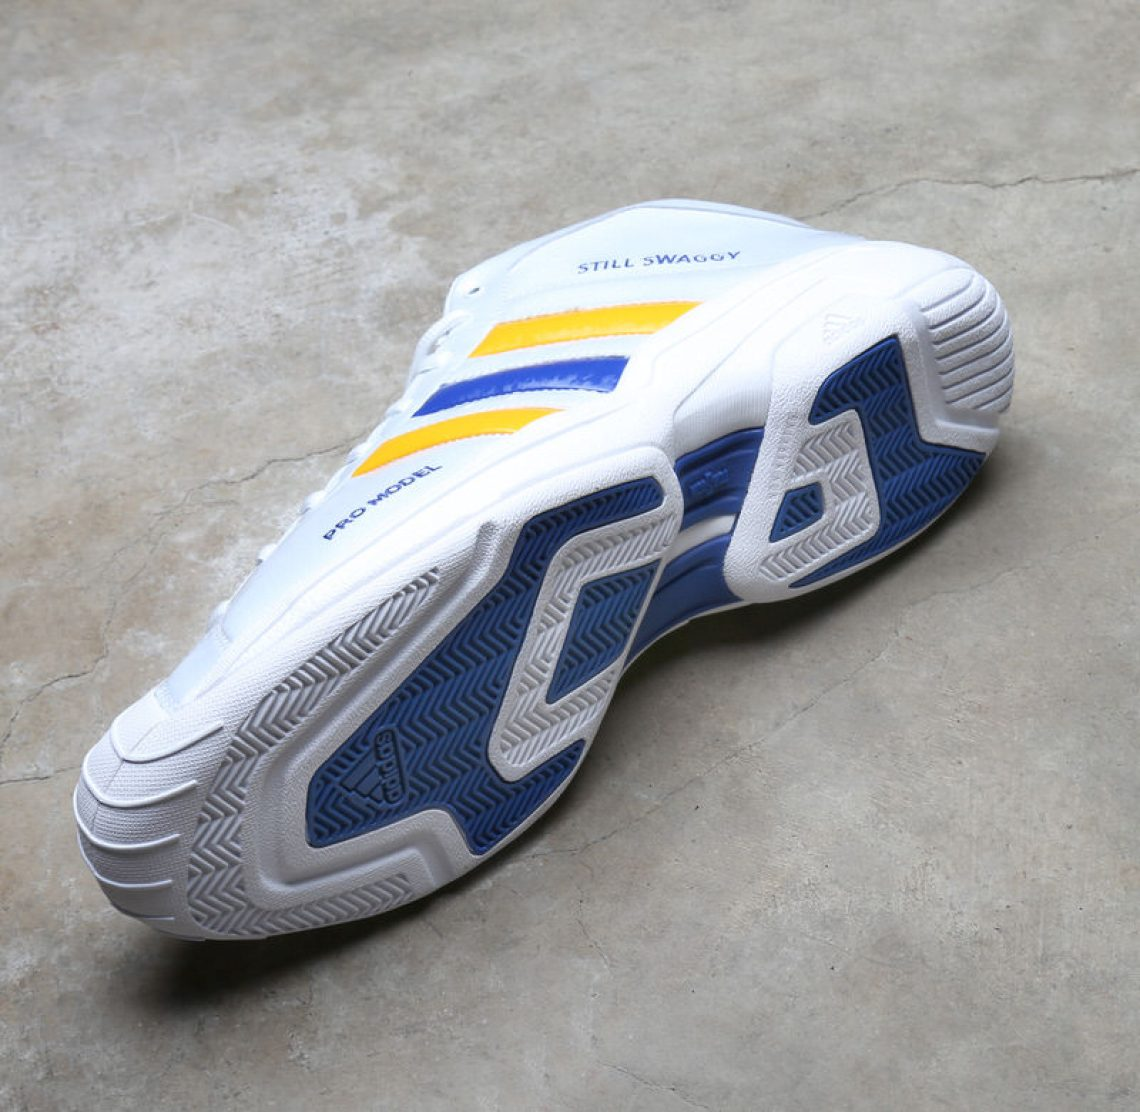 Swaggy P Shoe Size